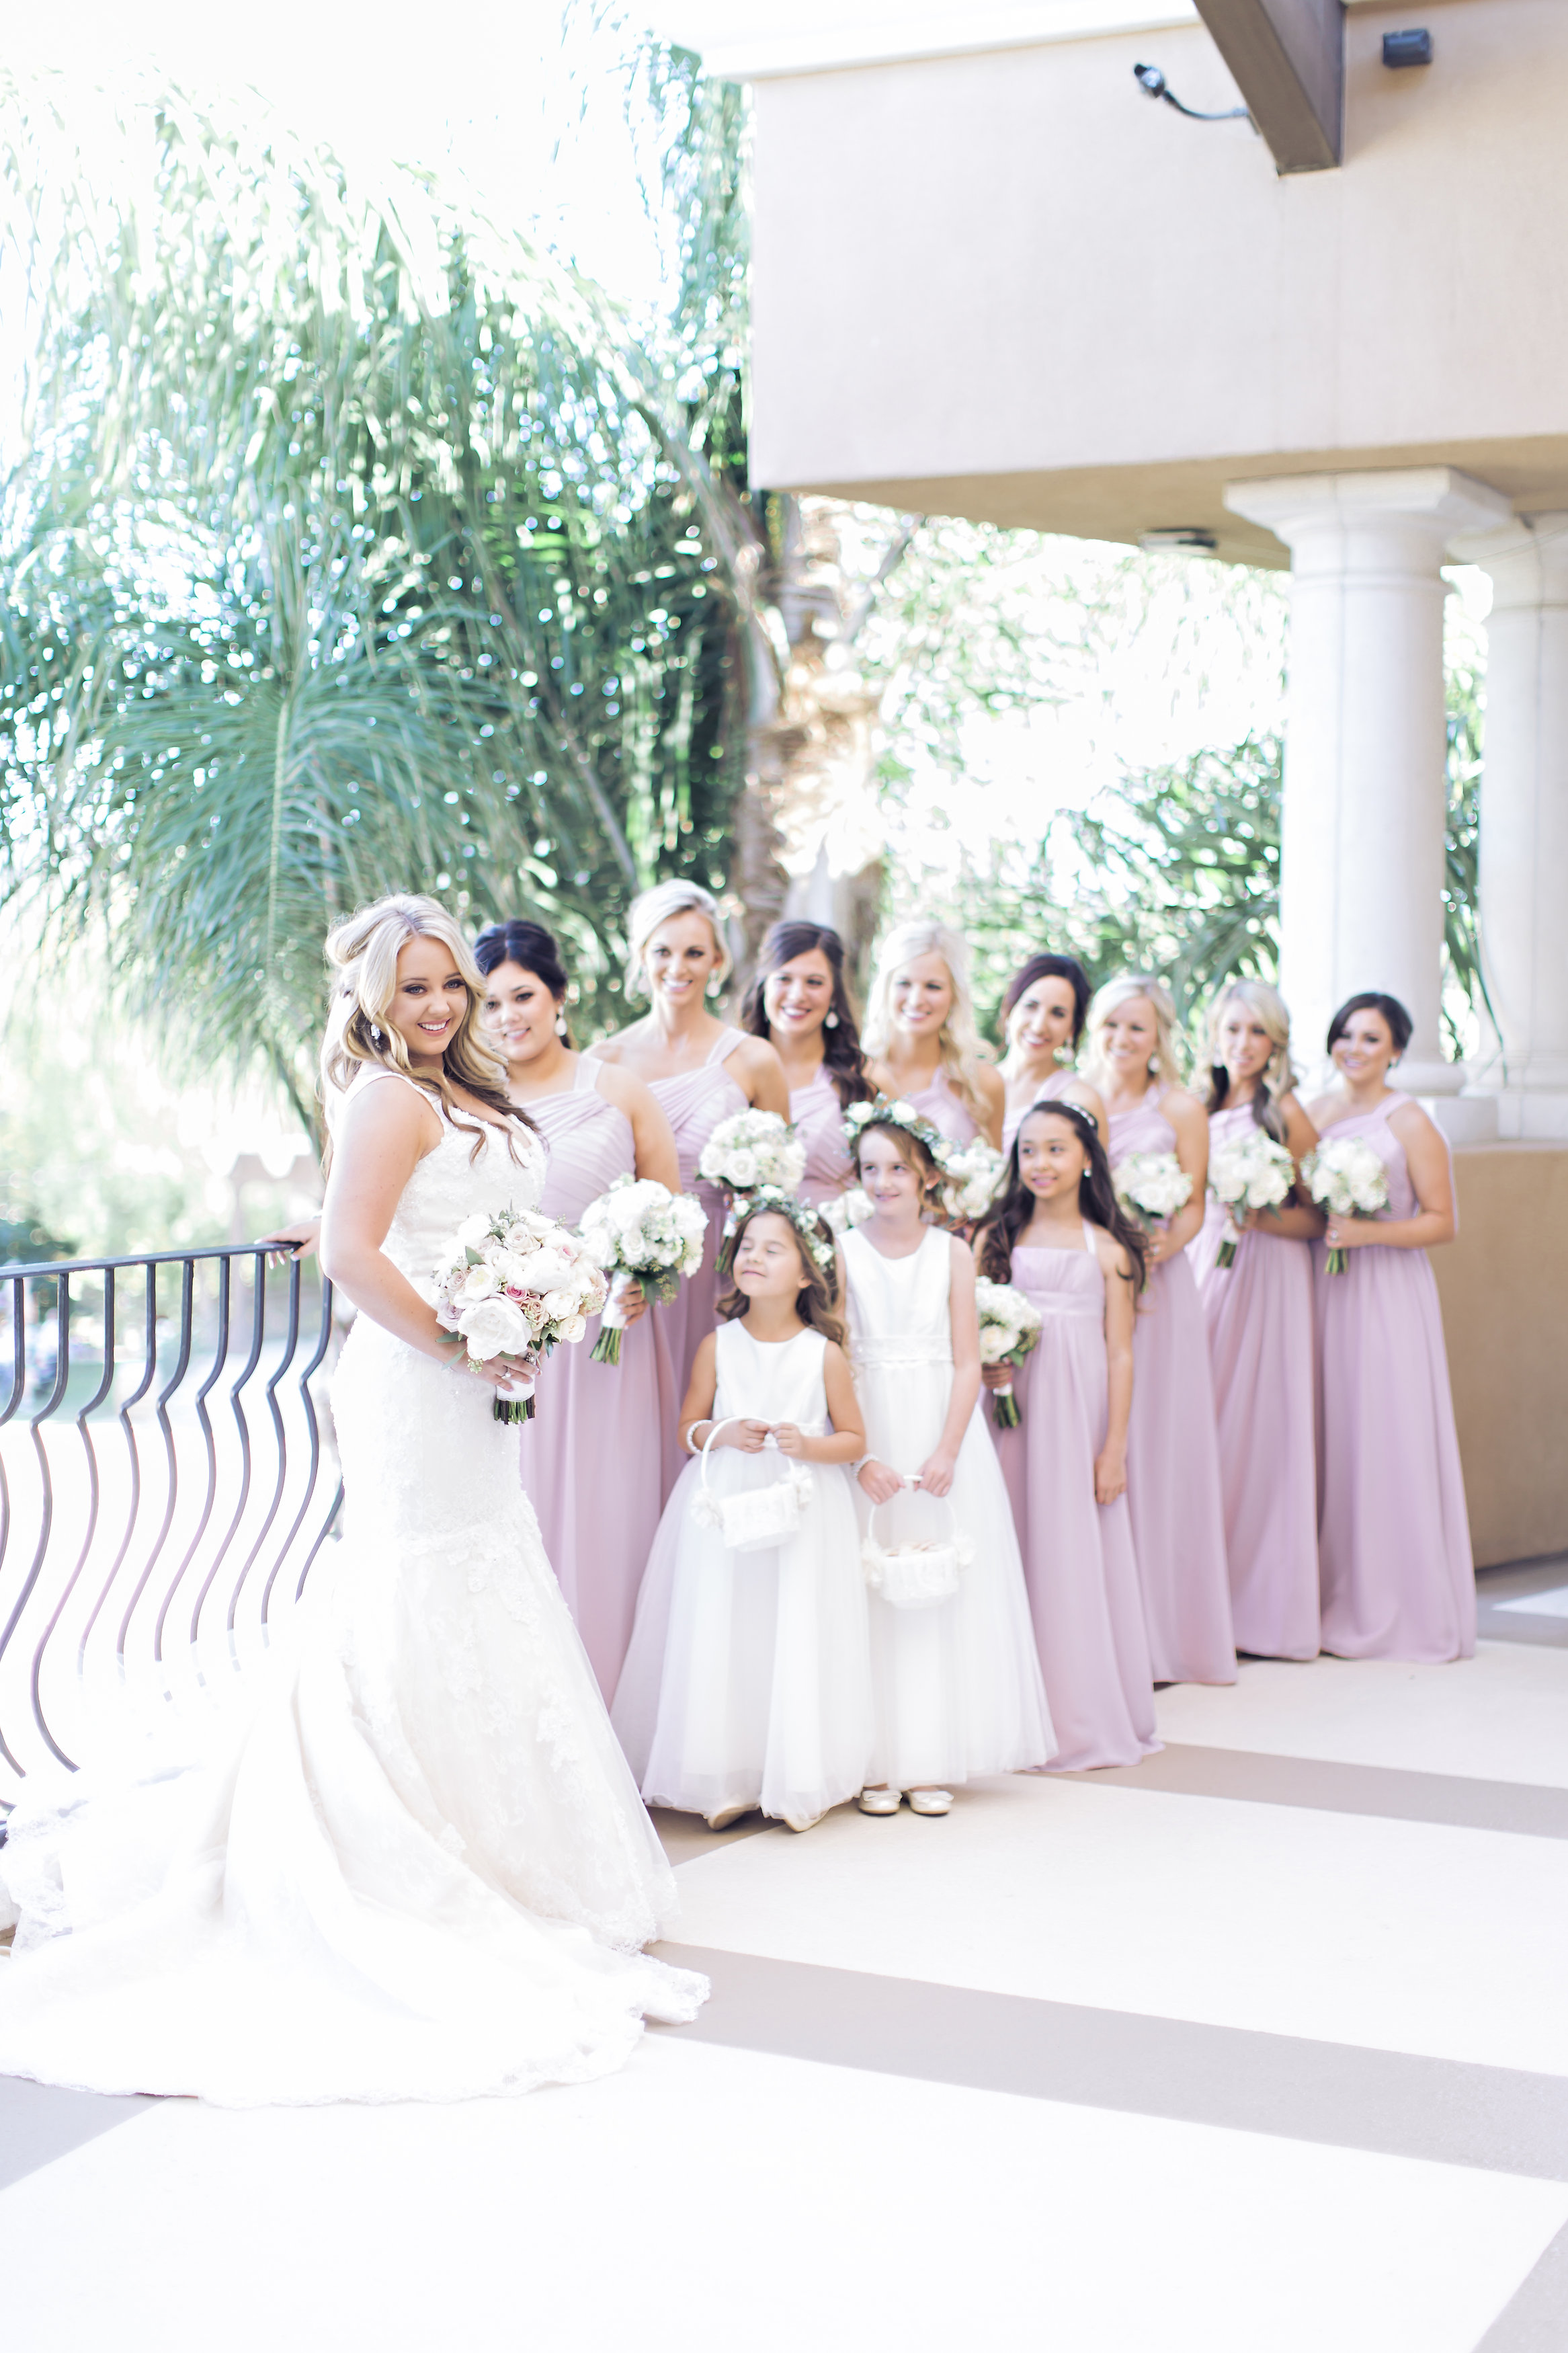 Pink Bridesmaid Dresses | Temecula Private Estate Wedding | Michelle Garibay Events